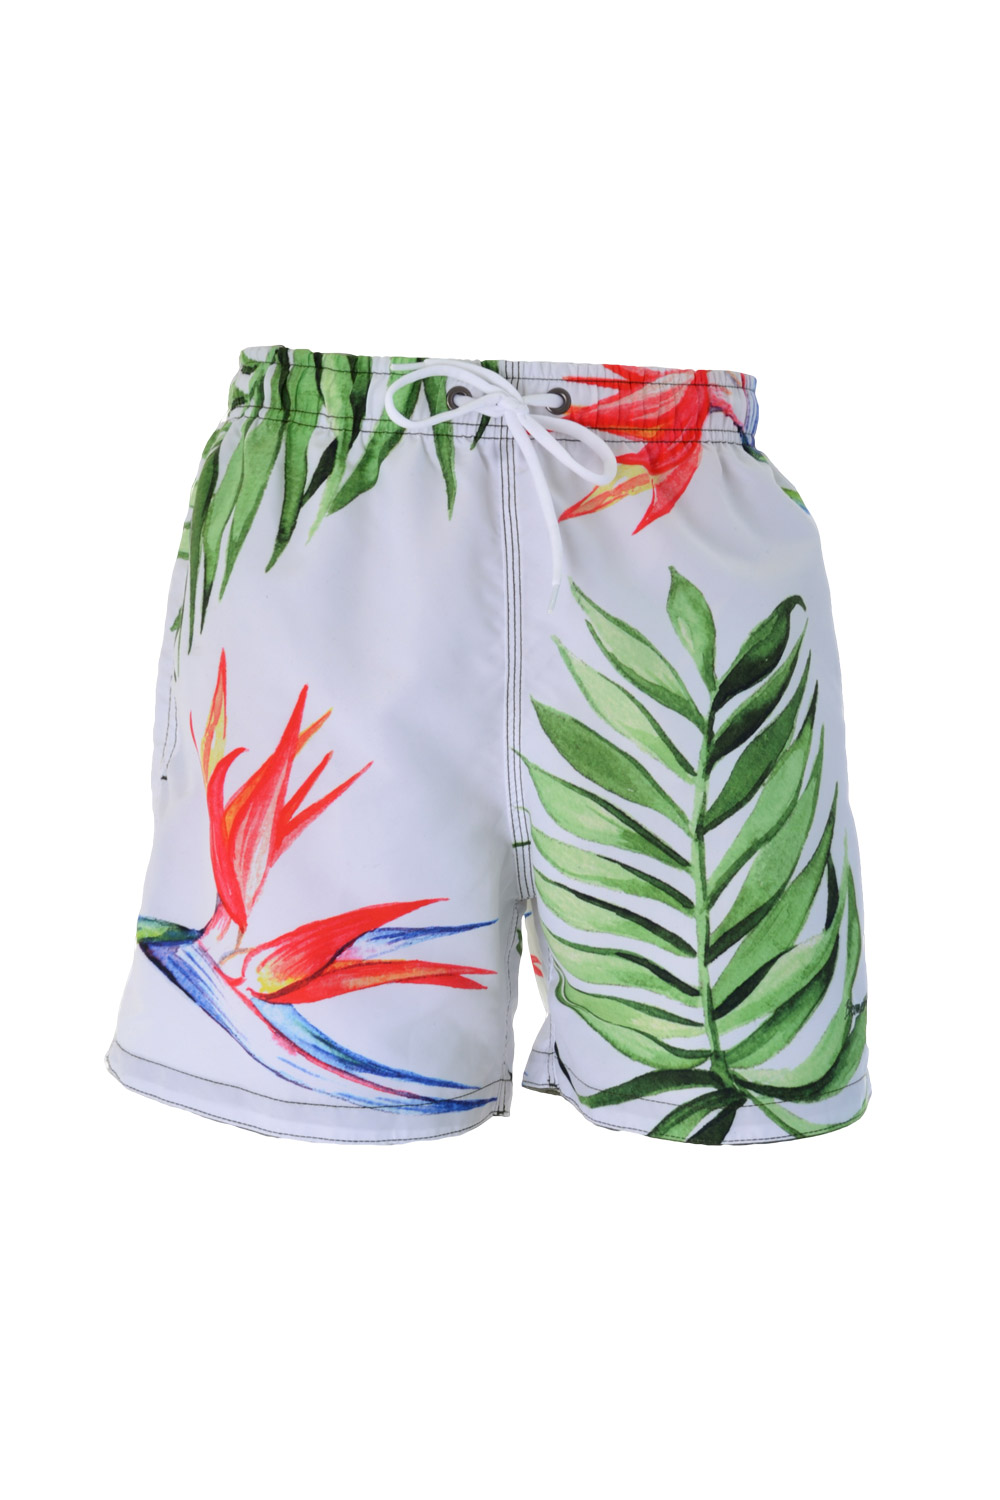 SHORTS MARINE POLIESTER CONCEPTS ESTAMPA FLORAL PV18